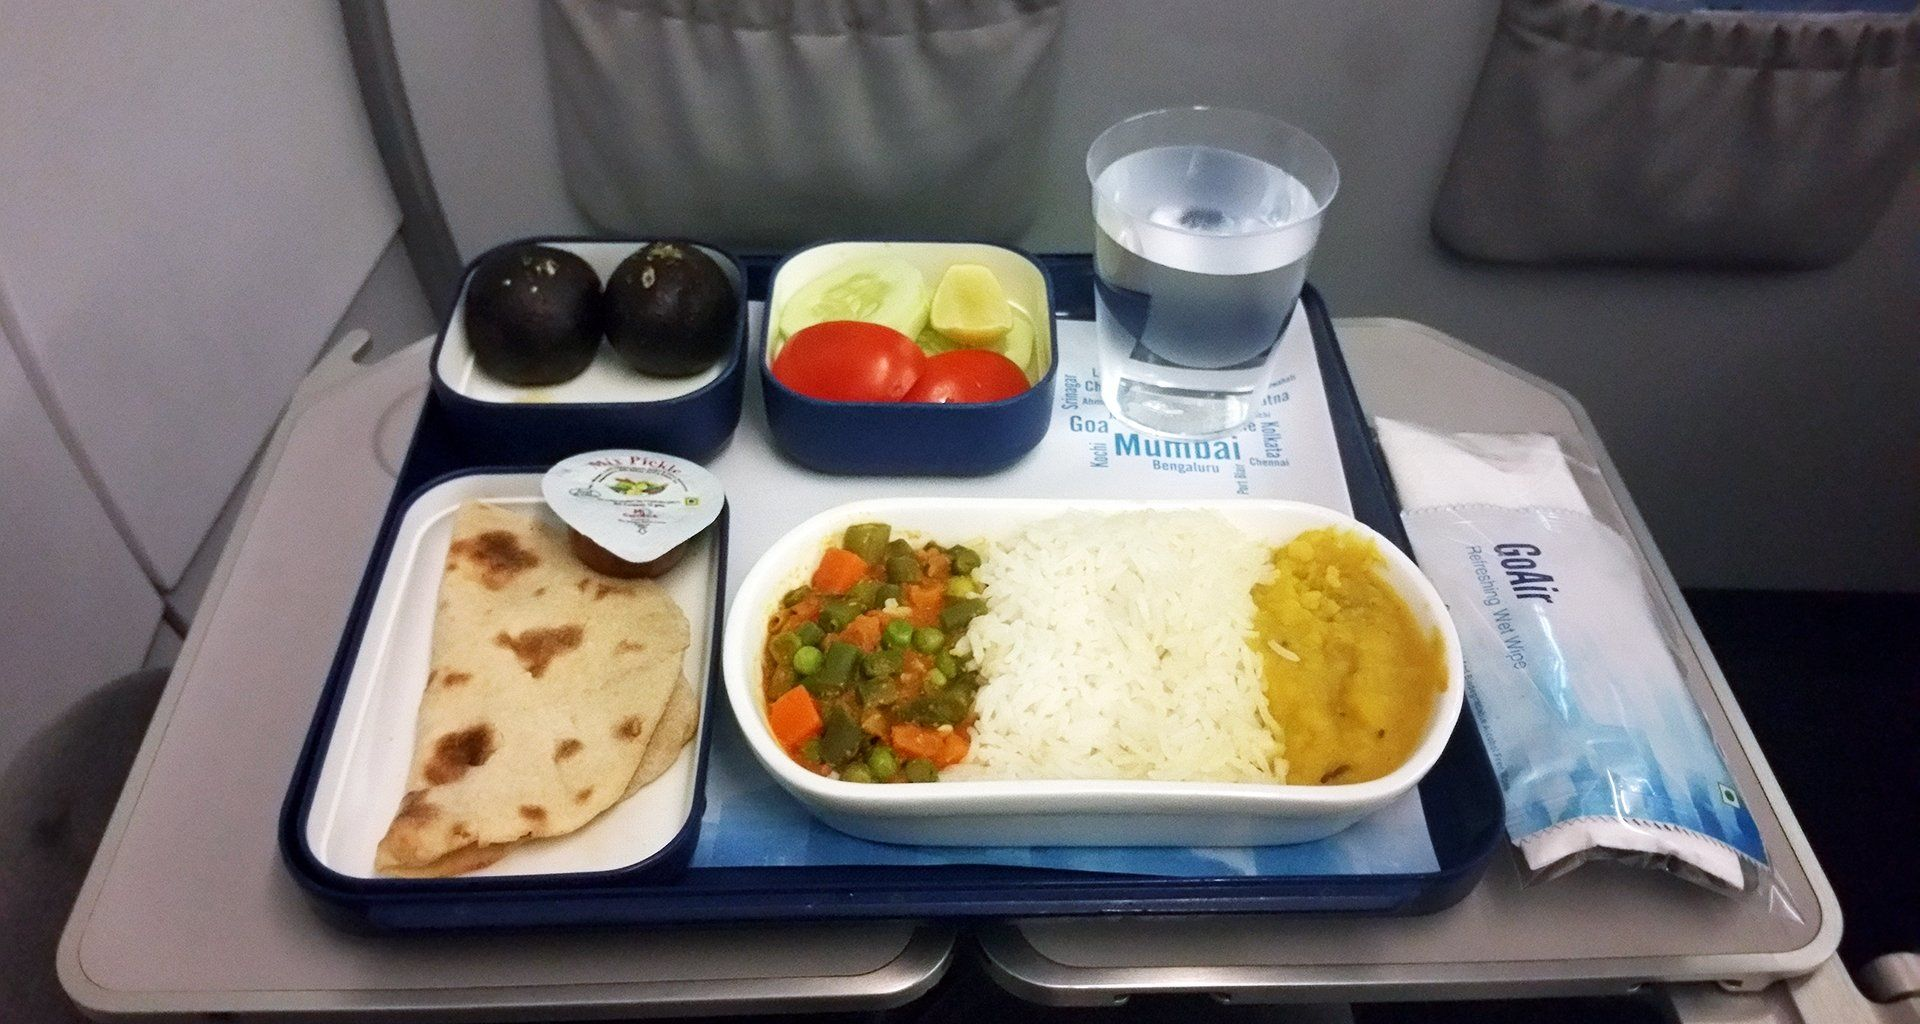 Go Air India Airline food, Food, Meals